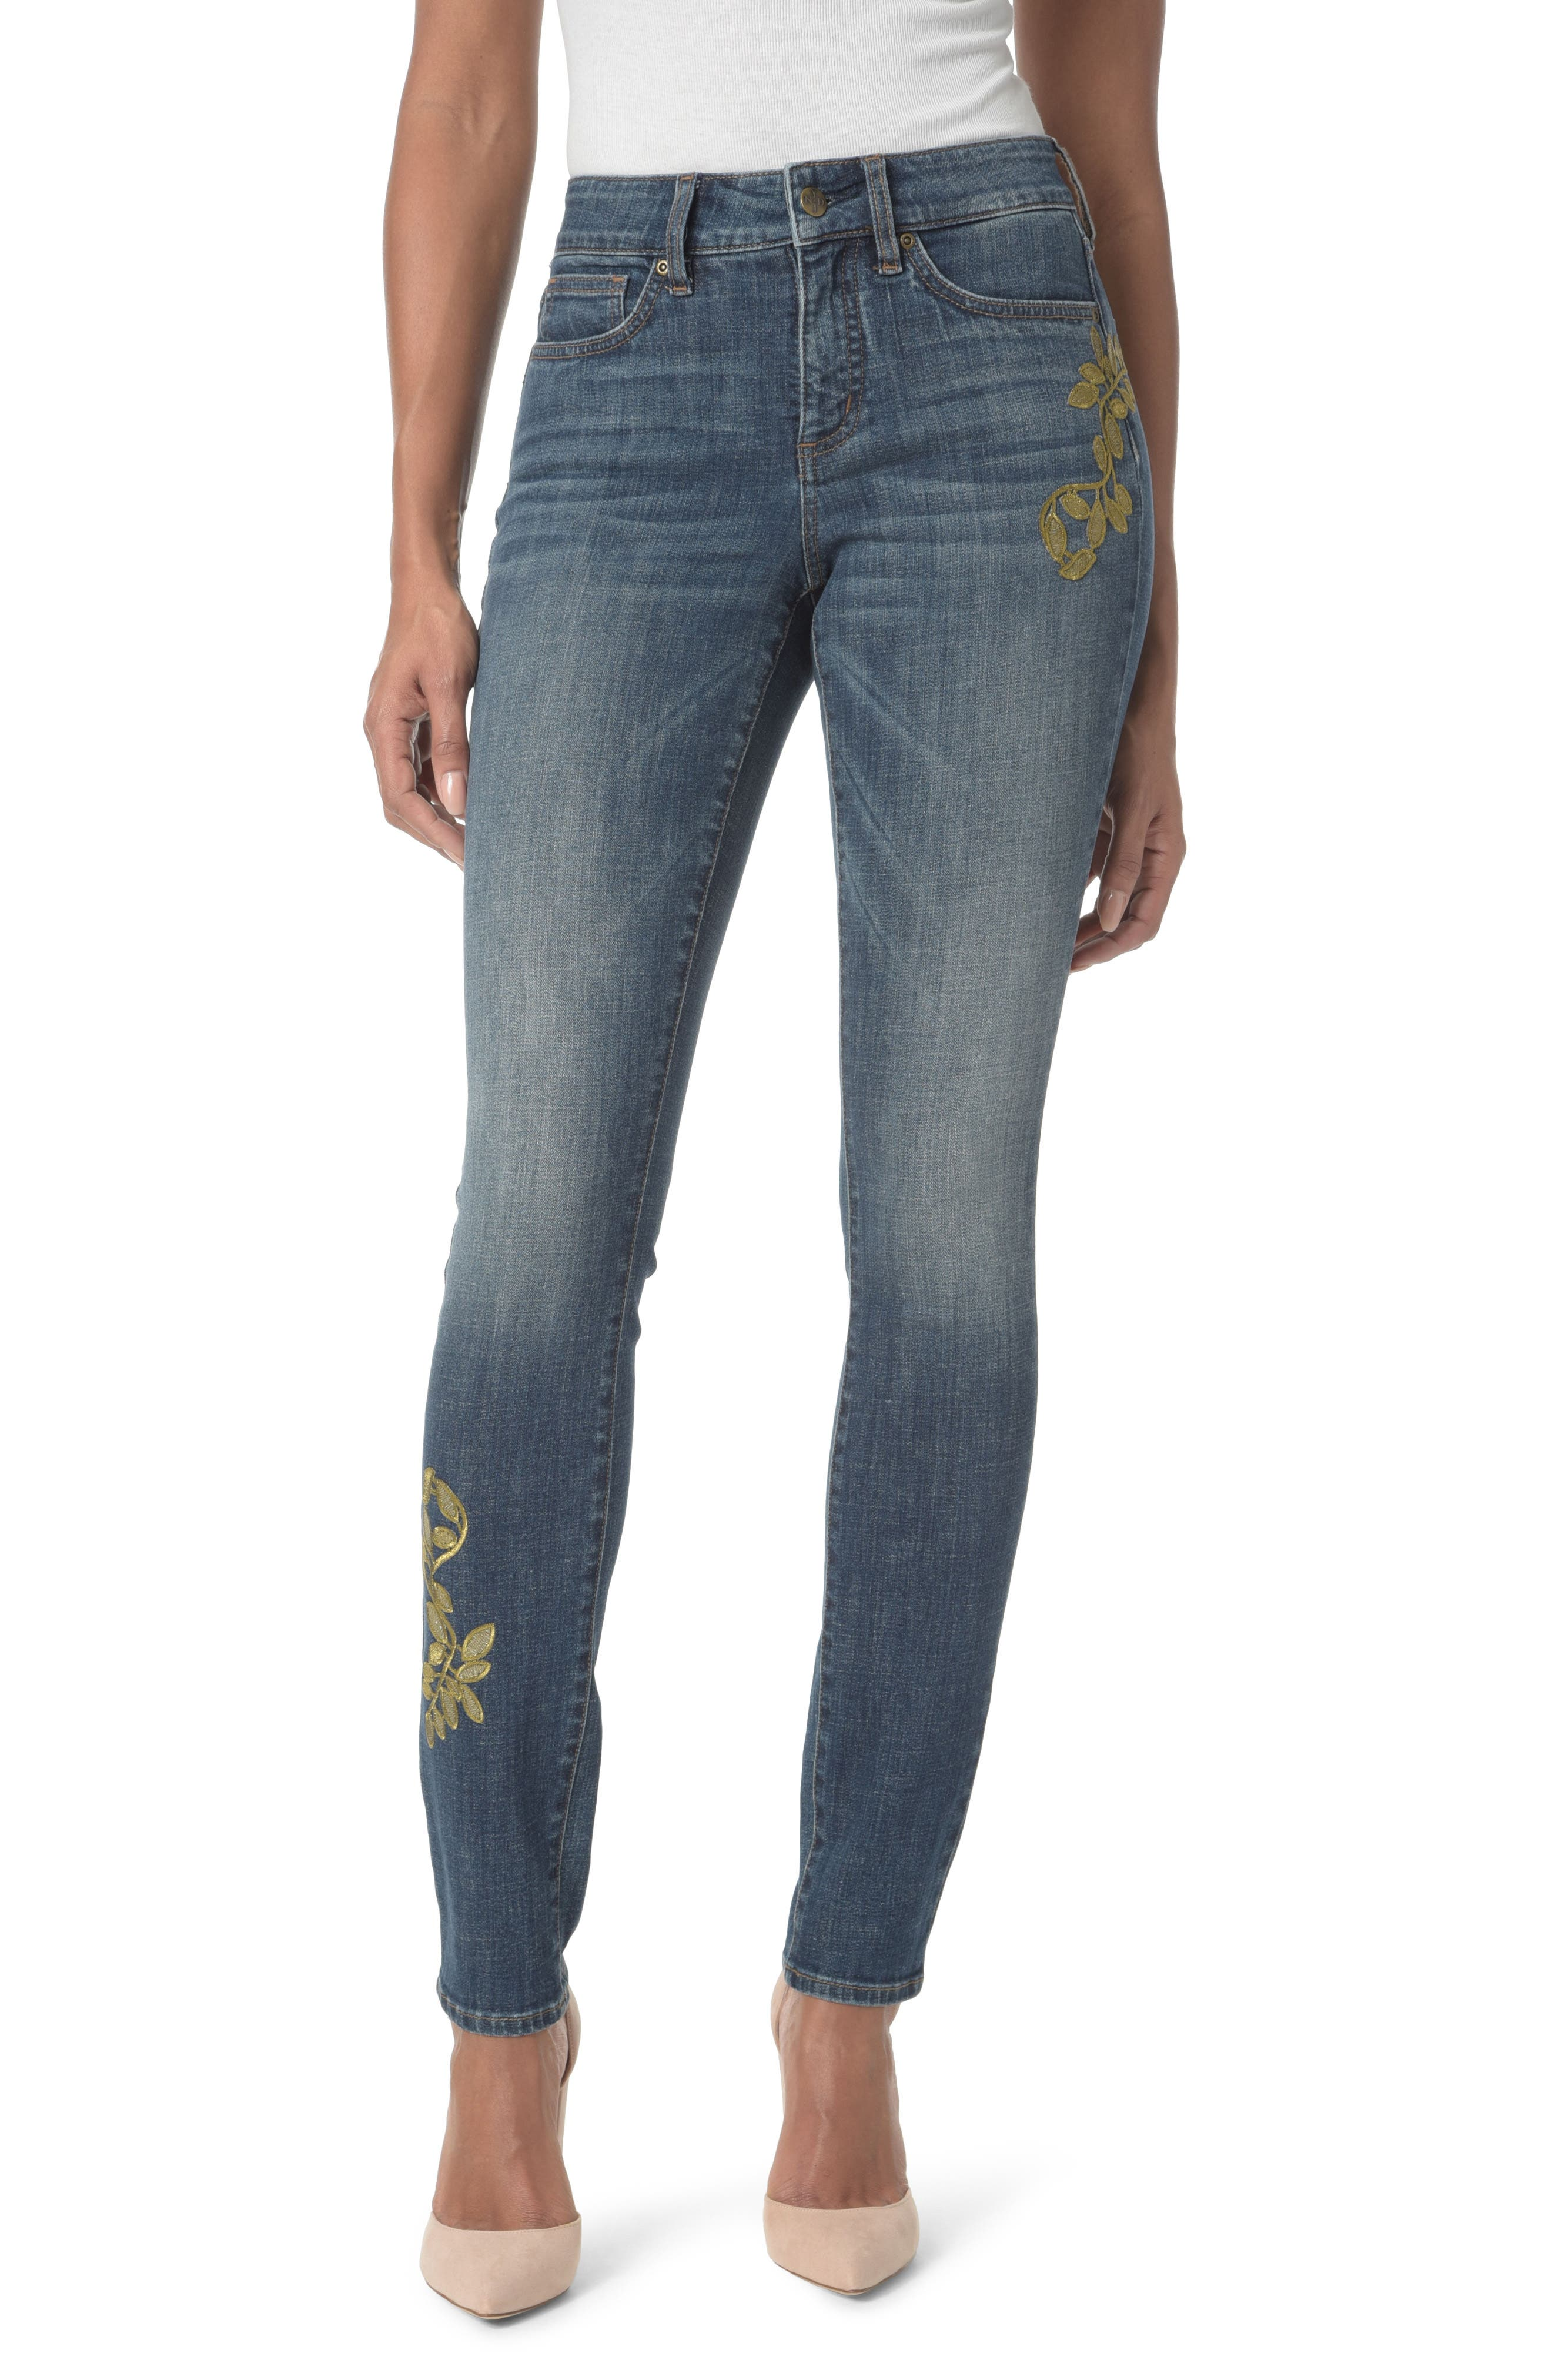 Alina High Waist Stretch Skinny Jeans,                         Main,                         color,